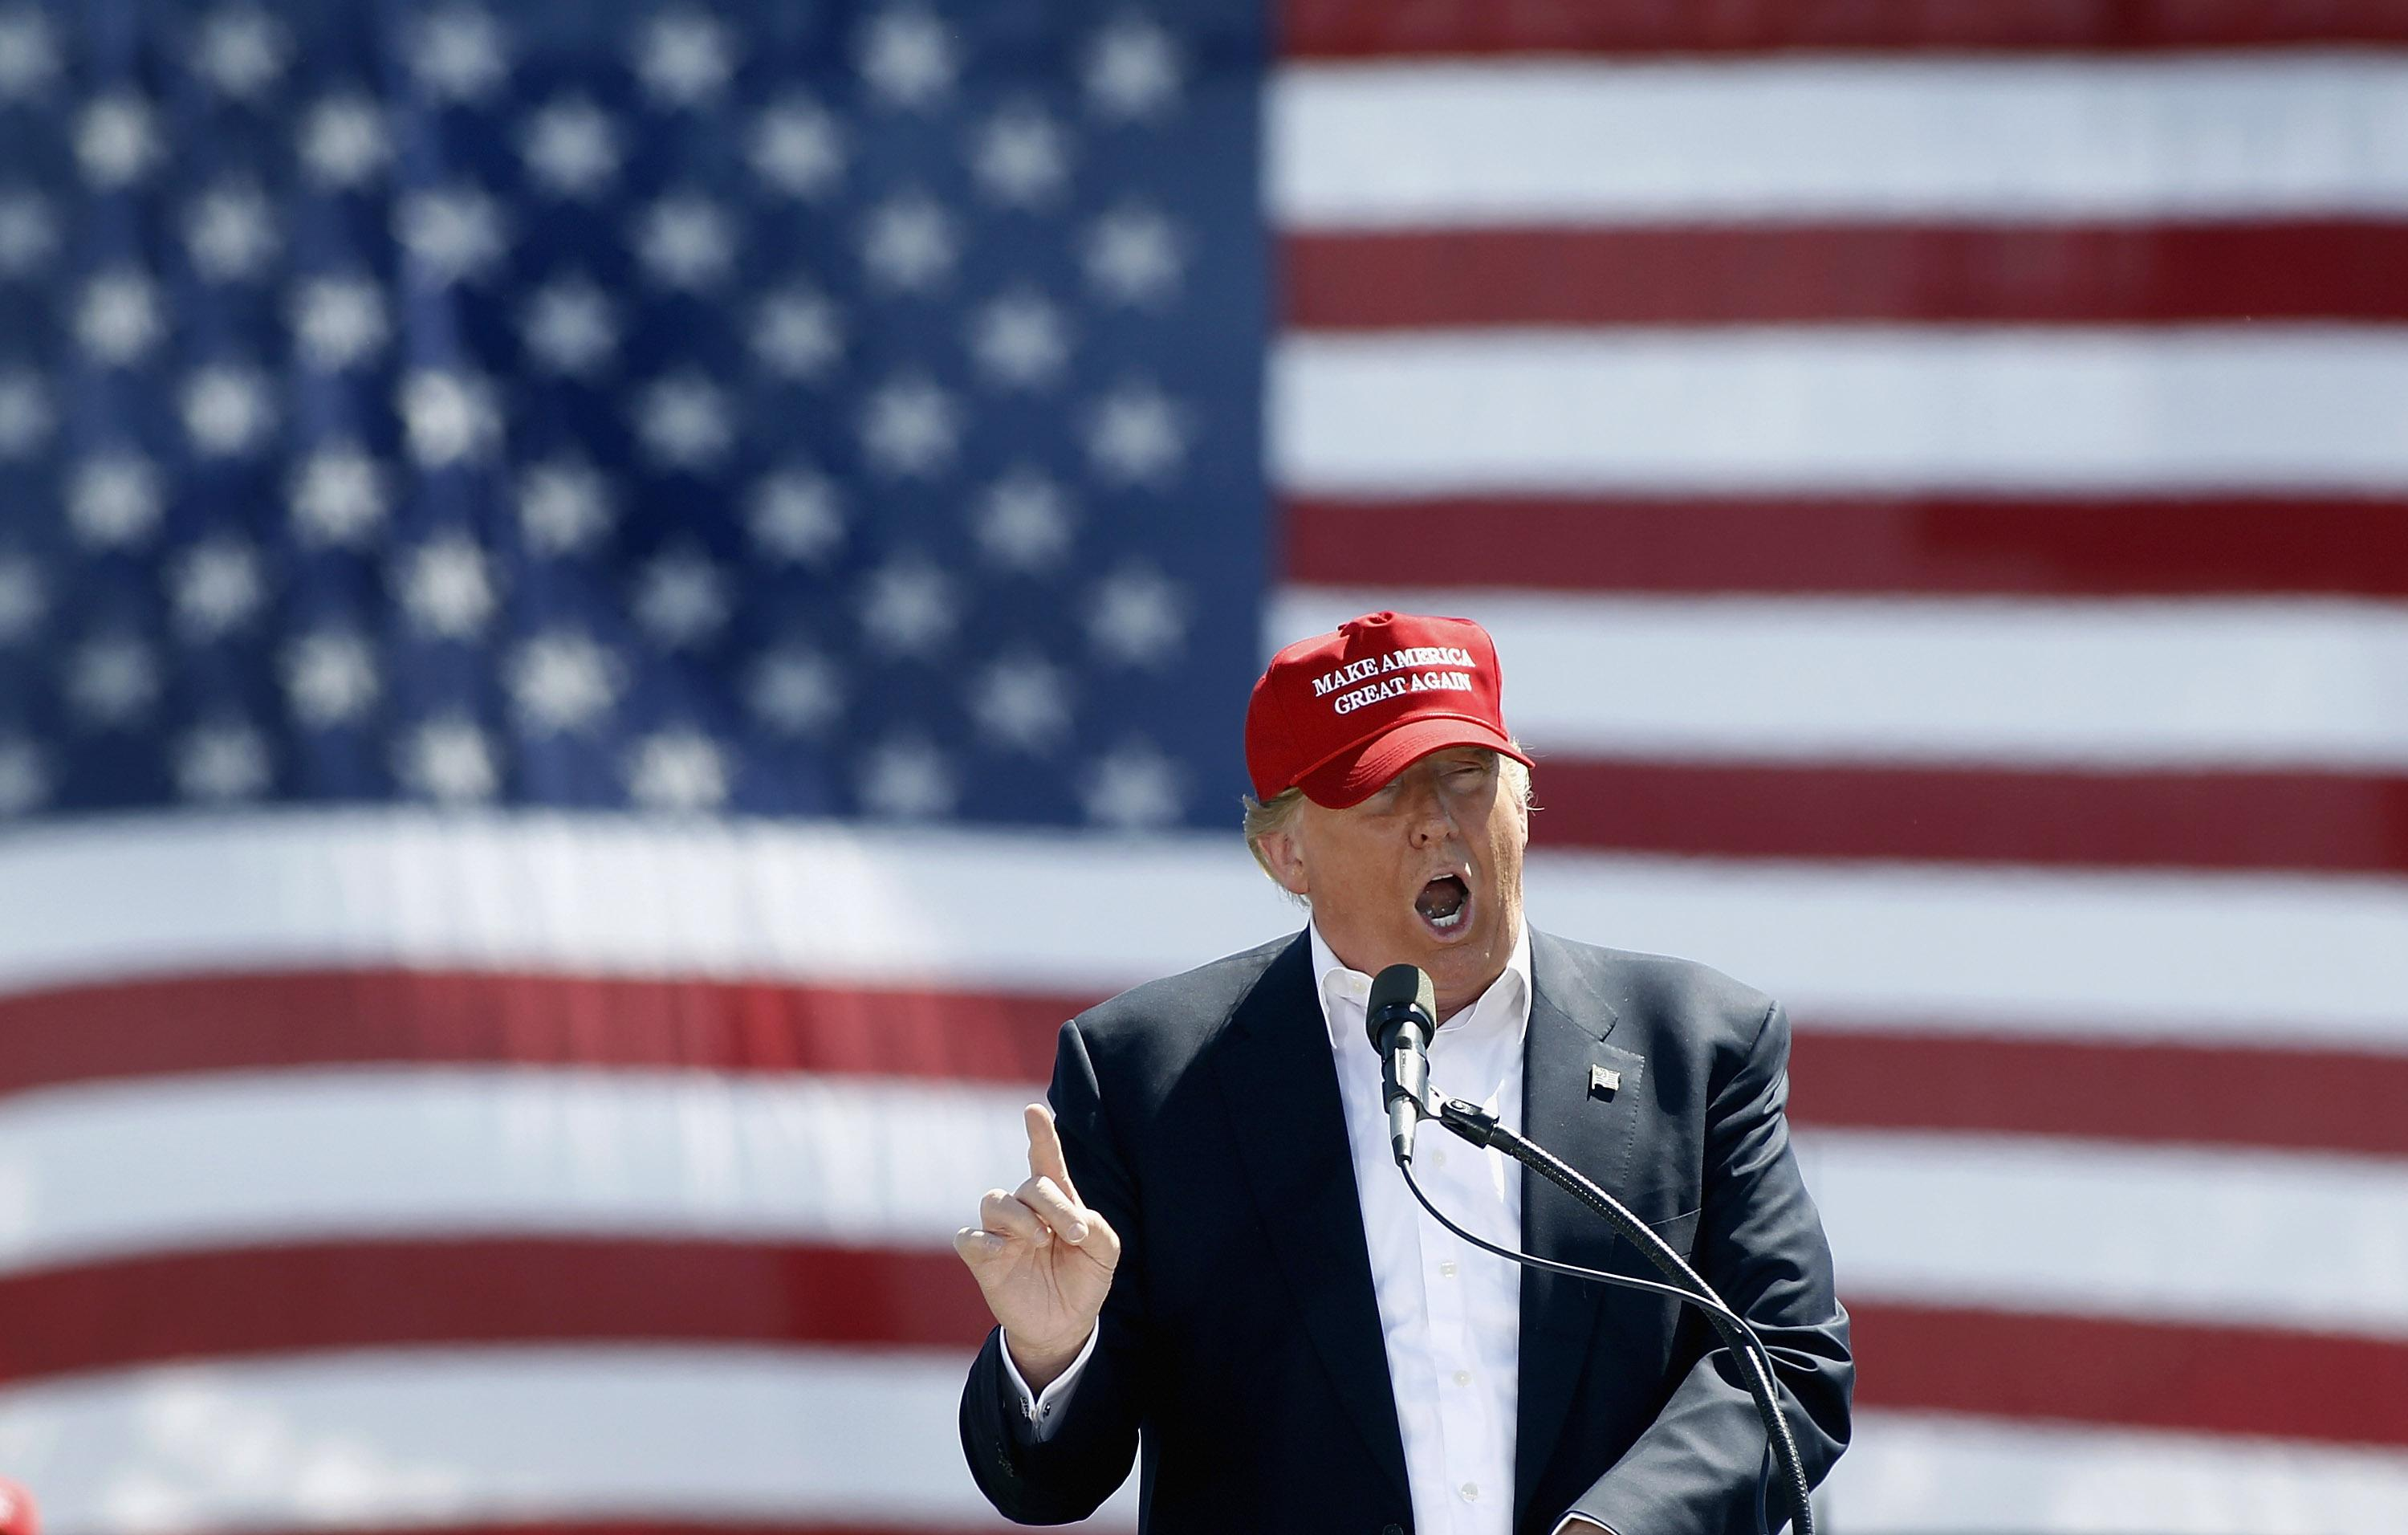 Donald Trump supporters, protesters clash outside rally in Utah